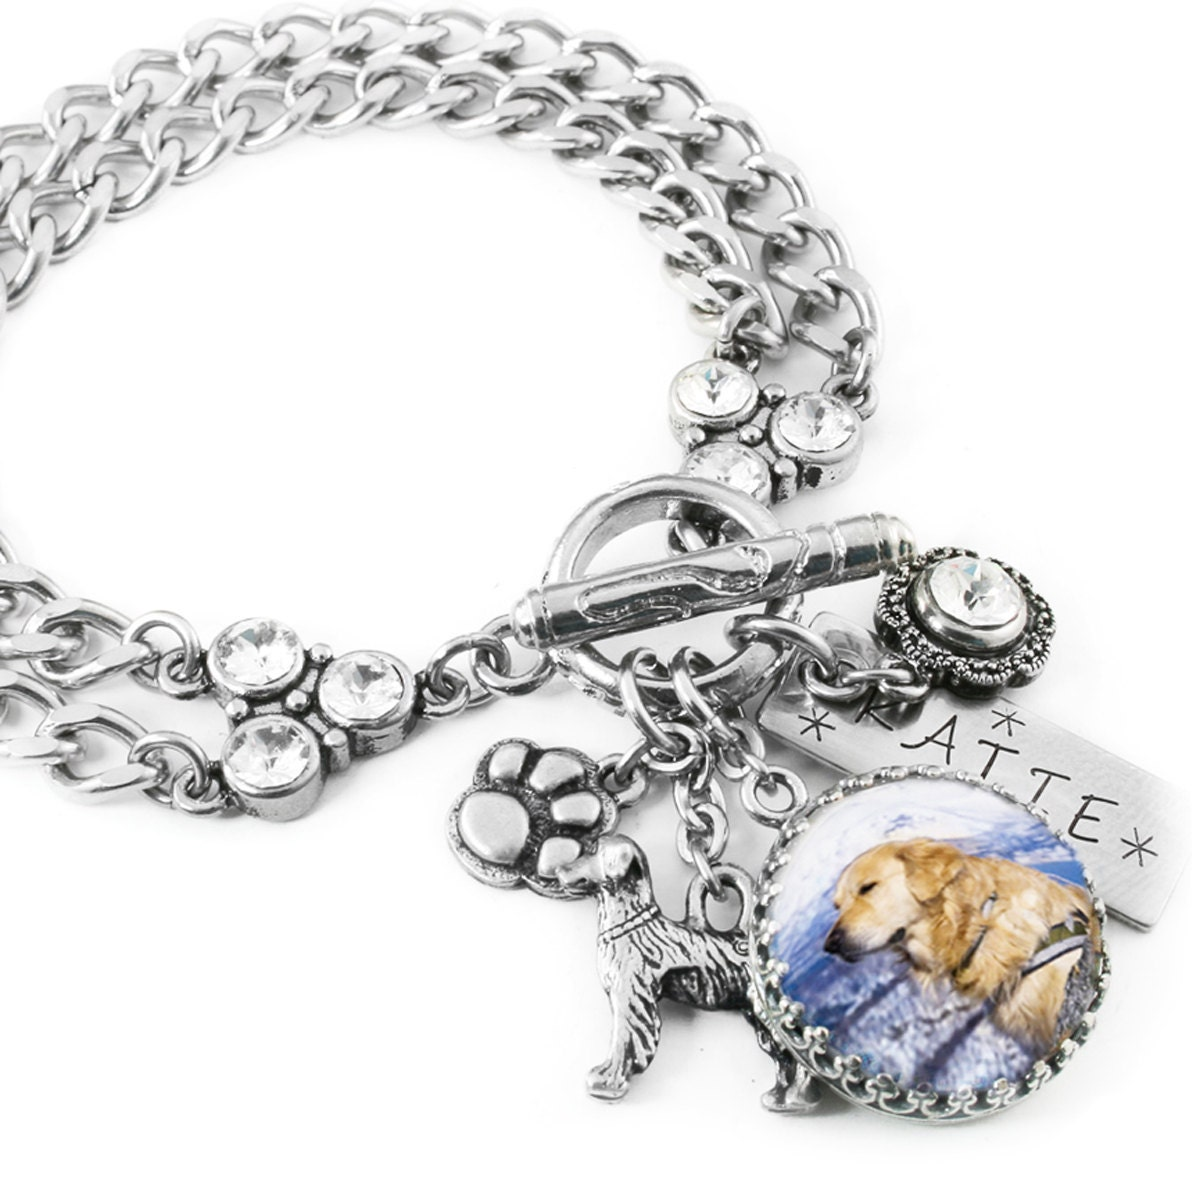 Personalized Bracelet Charms: Personalized Dog Jewelry Dog Charm Bracelet Personalized